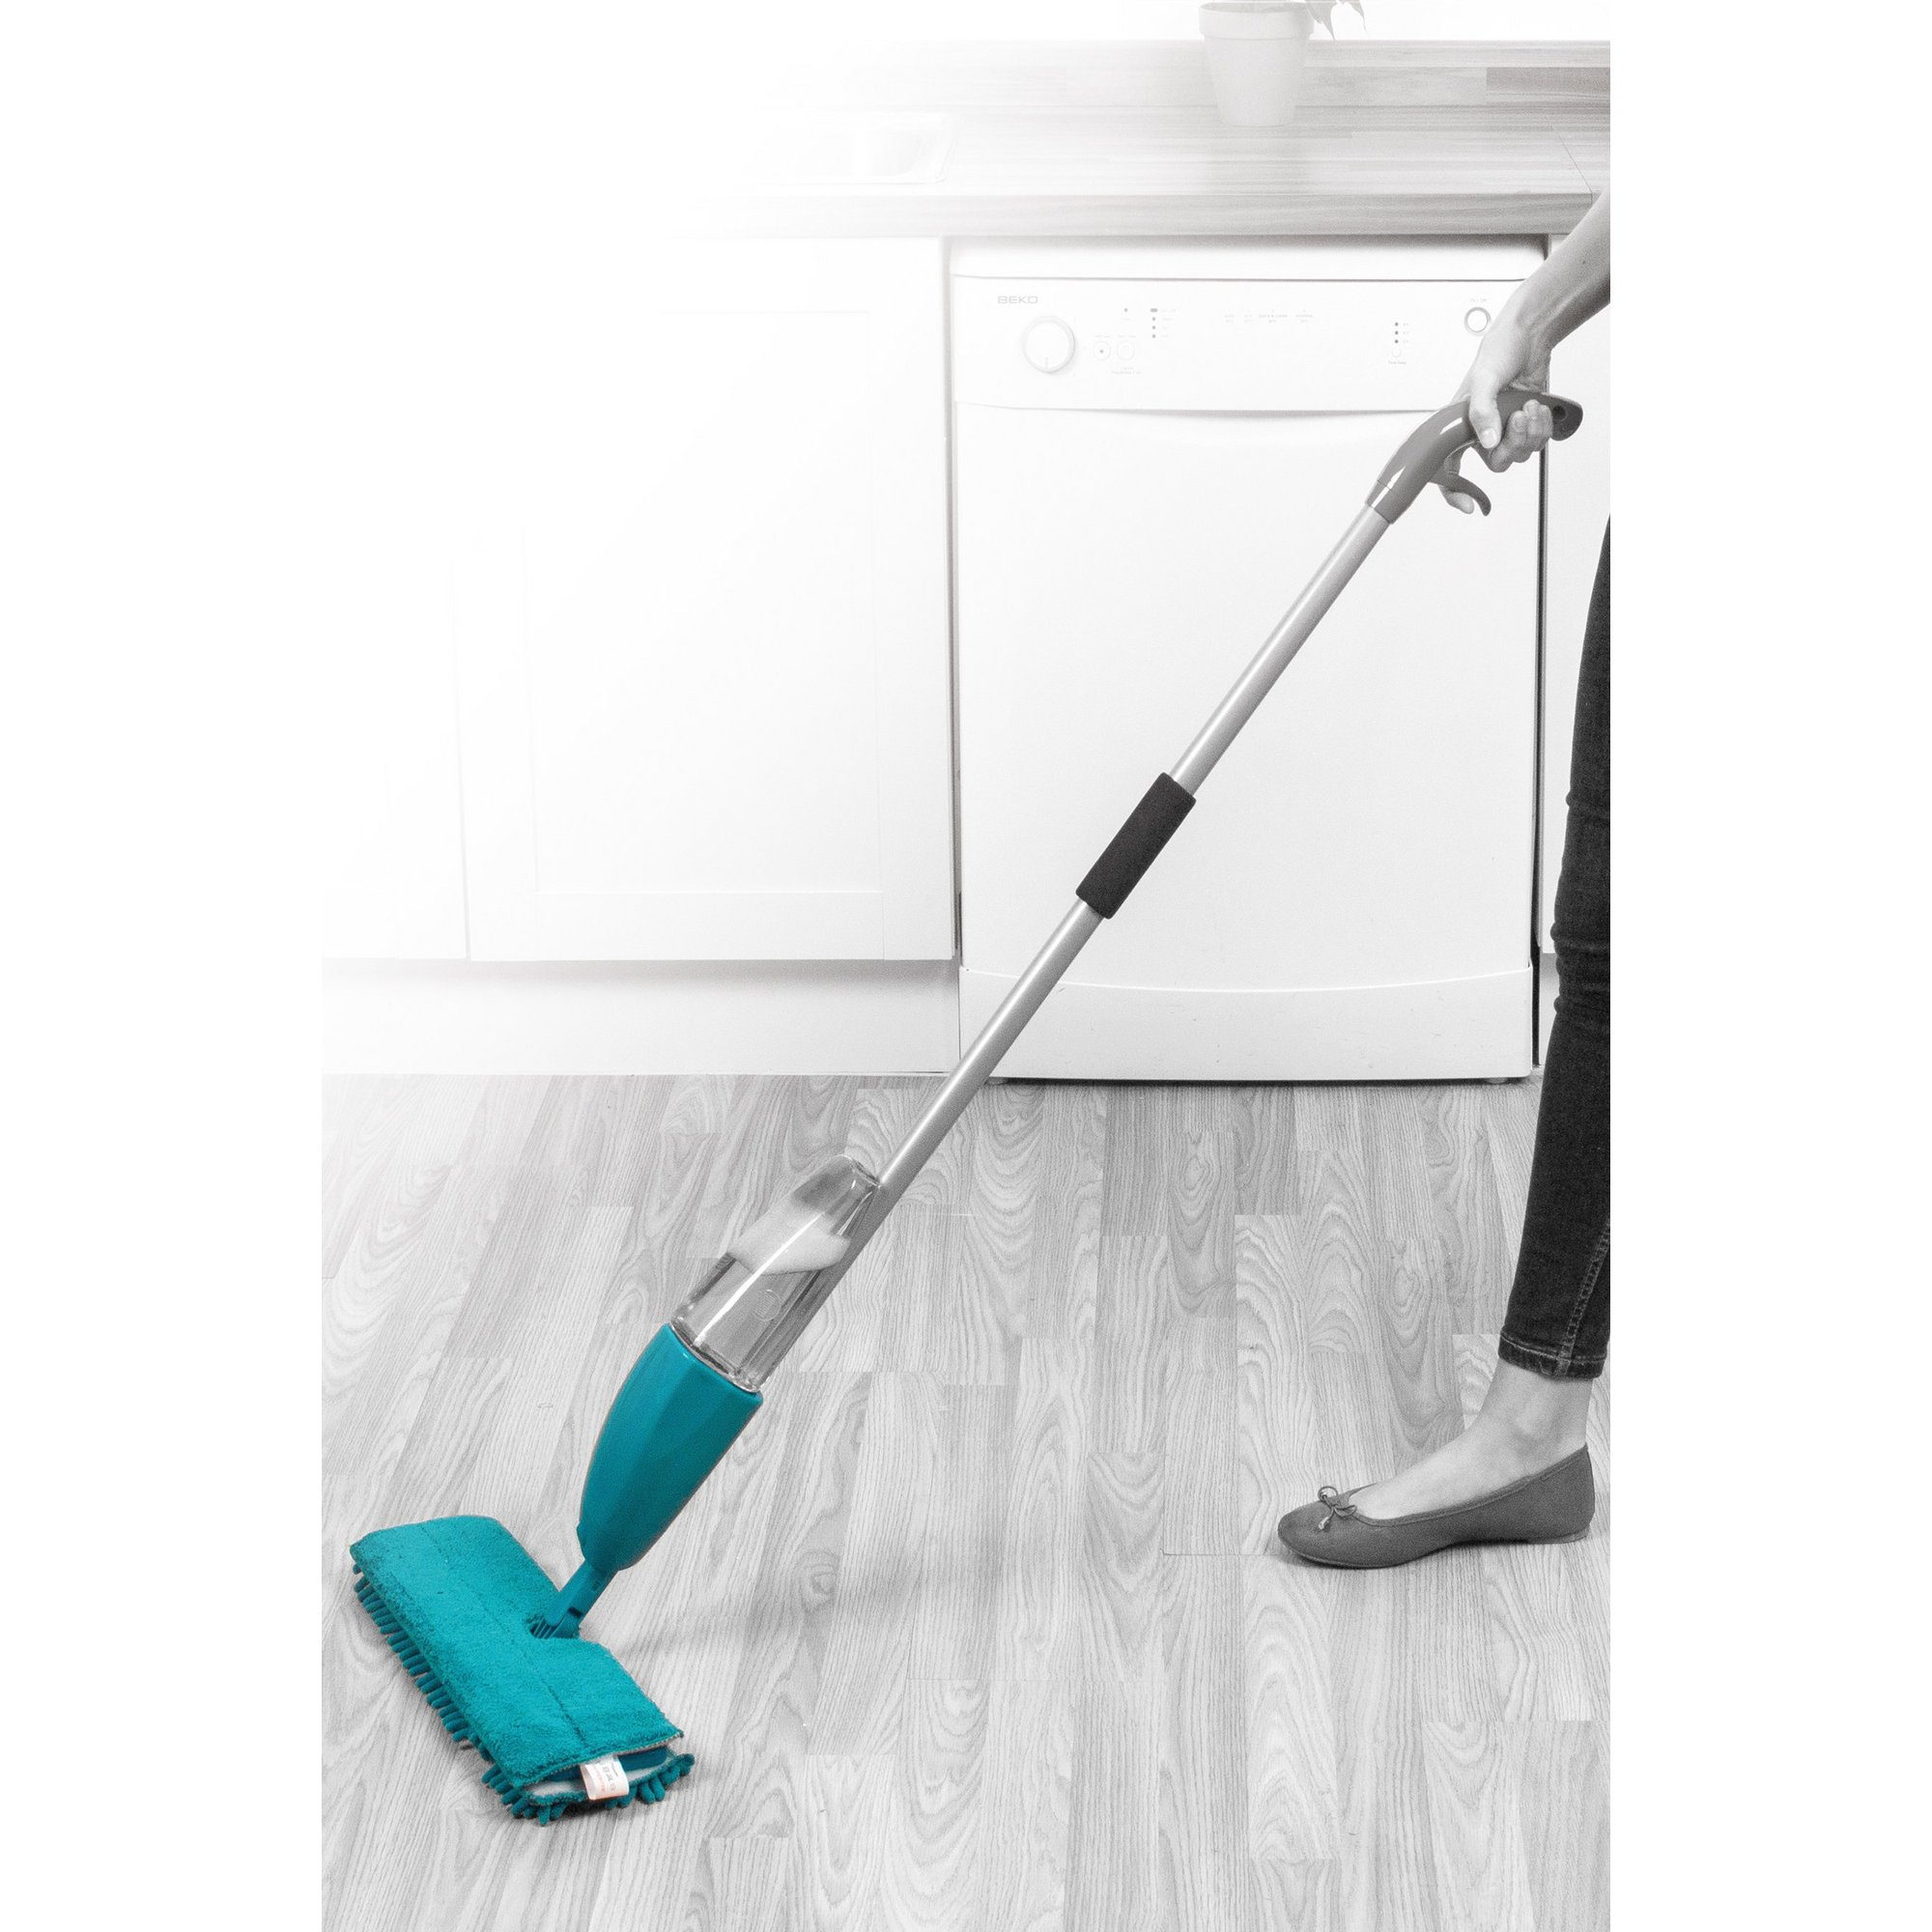 Image of Beldray Double Sided Spray Mop